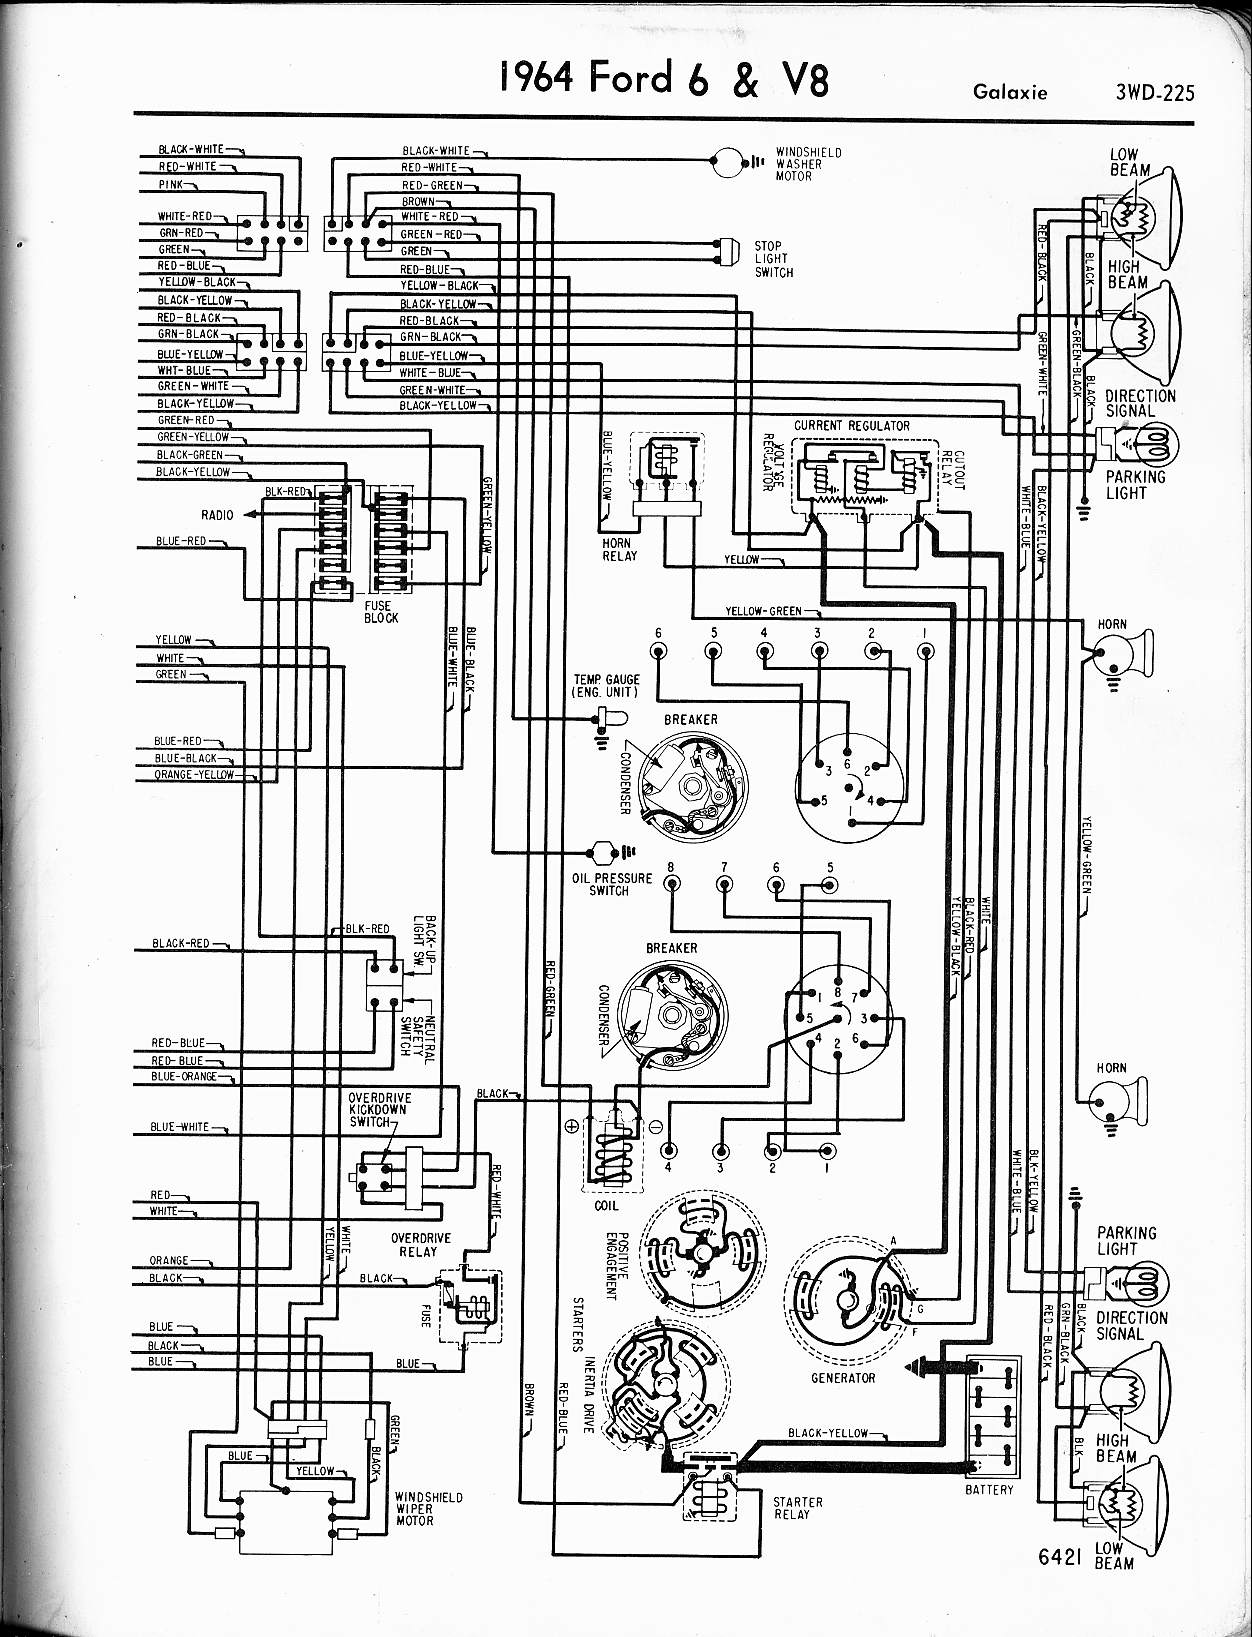 57 65 Ford Wiring Diagrams Jeep Cj5 Turn Signal Diagram 1964 6 V8 Galaxie Right